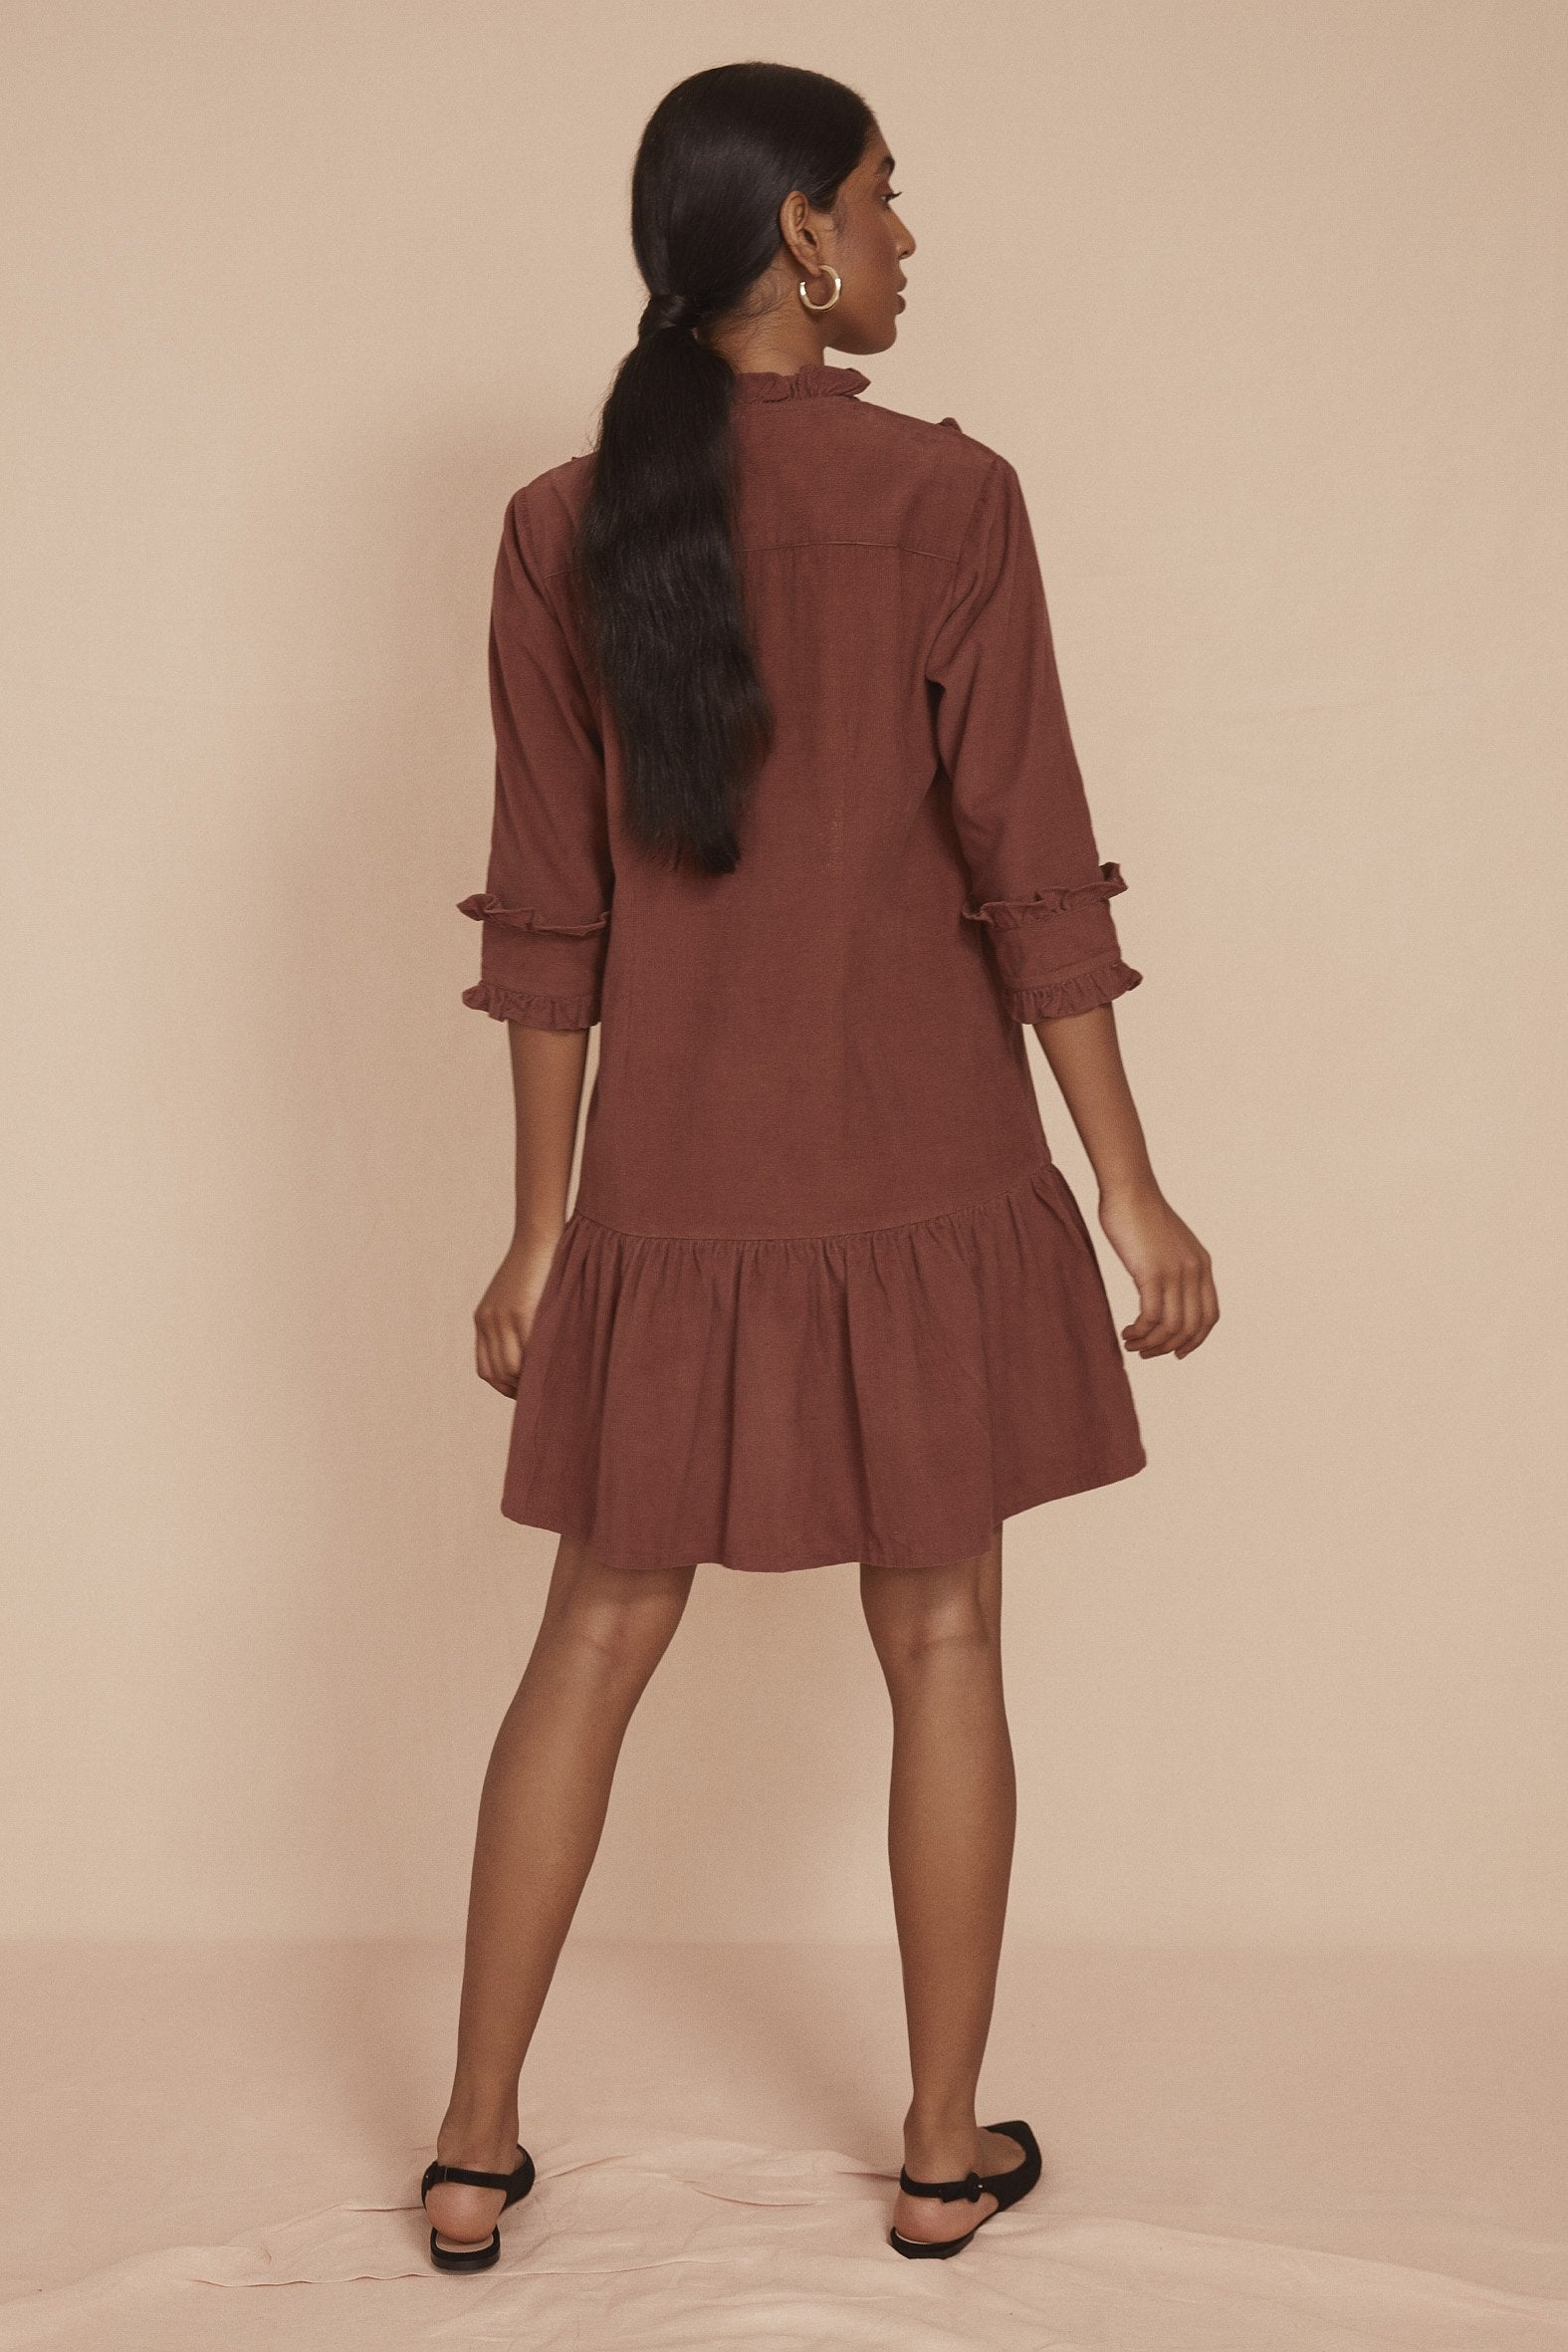 THE BELLA FRILL DRESS | Cognac Brown Baby Thin Corduroy